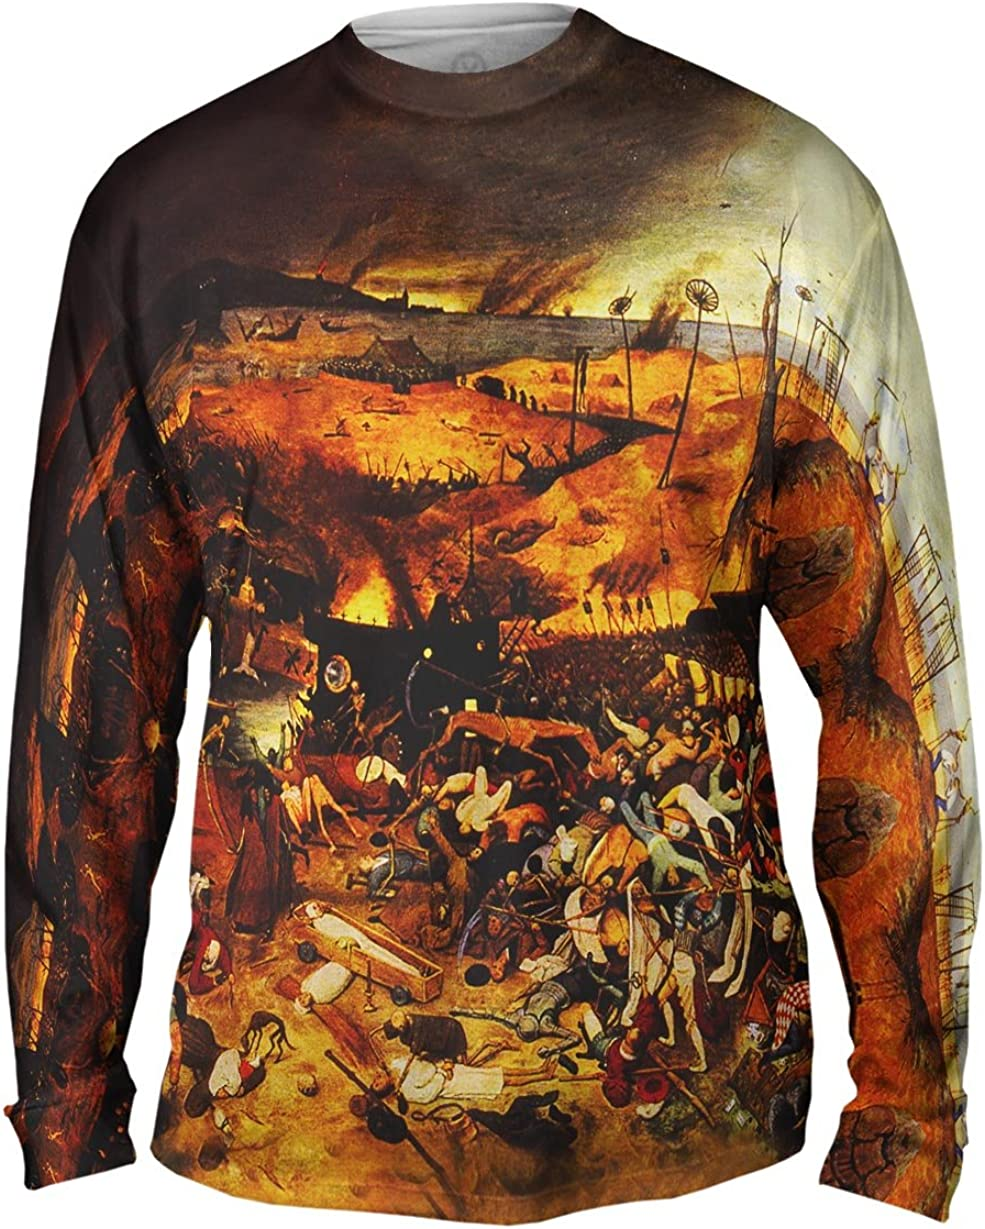 Yizzam- Bruegel - Triumph of Death (1562) -Tshirt- Mens Long Sleeve